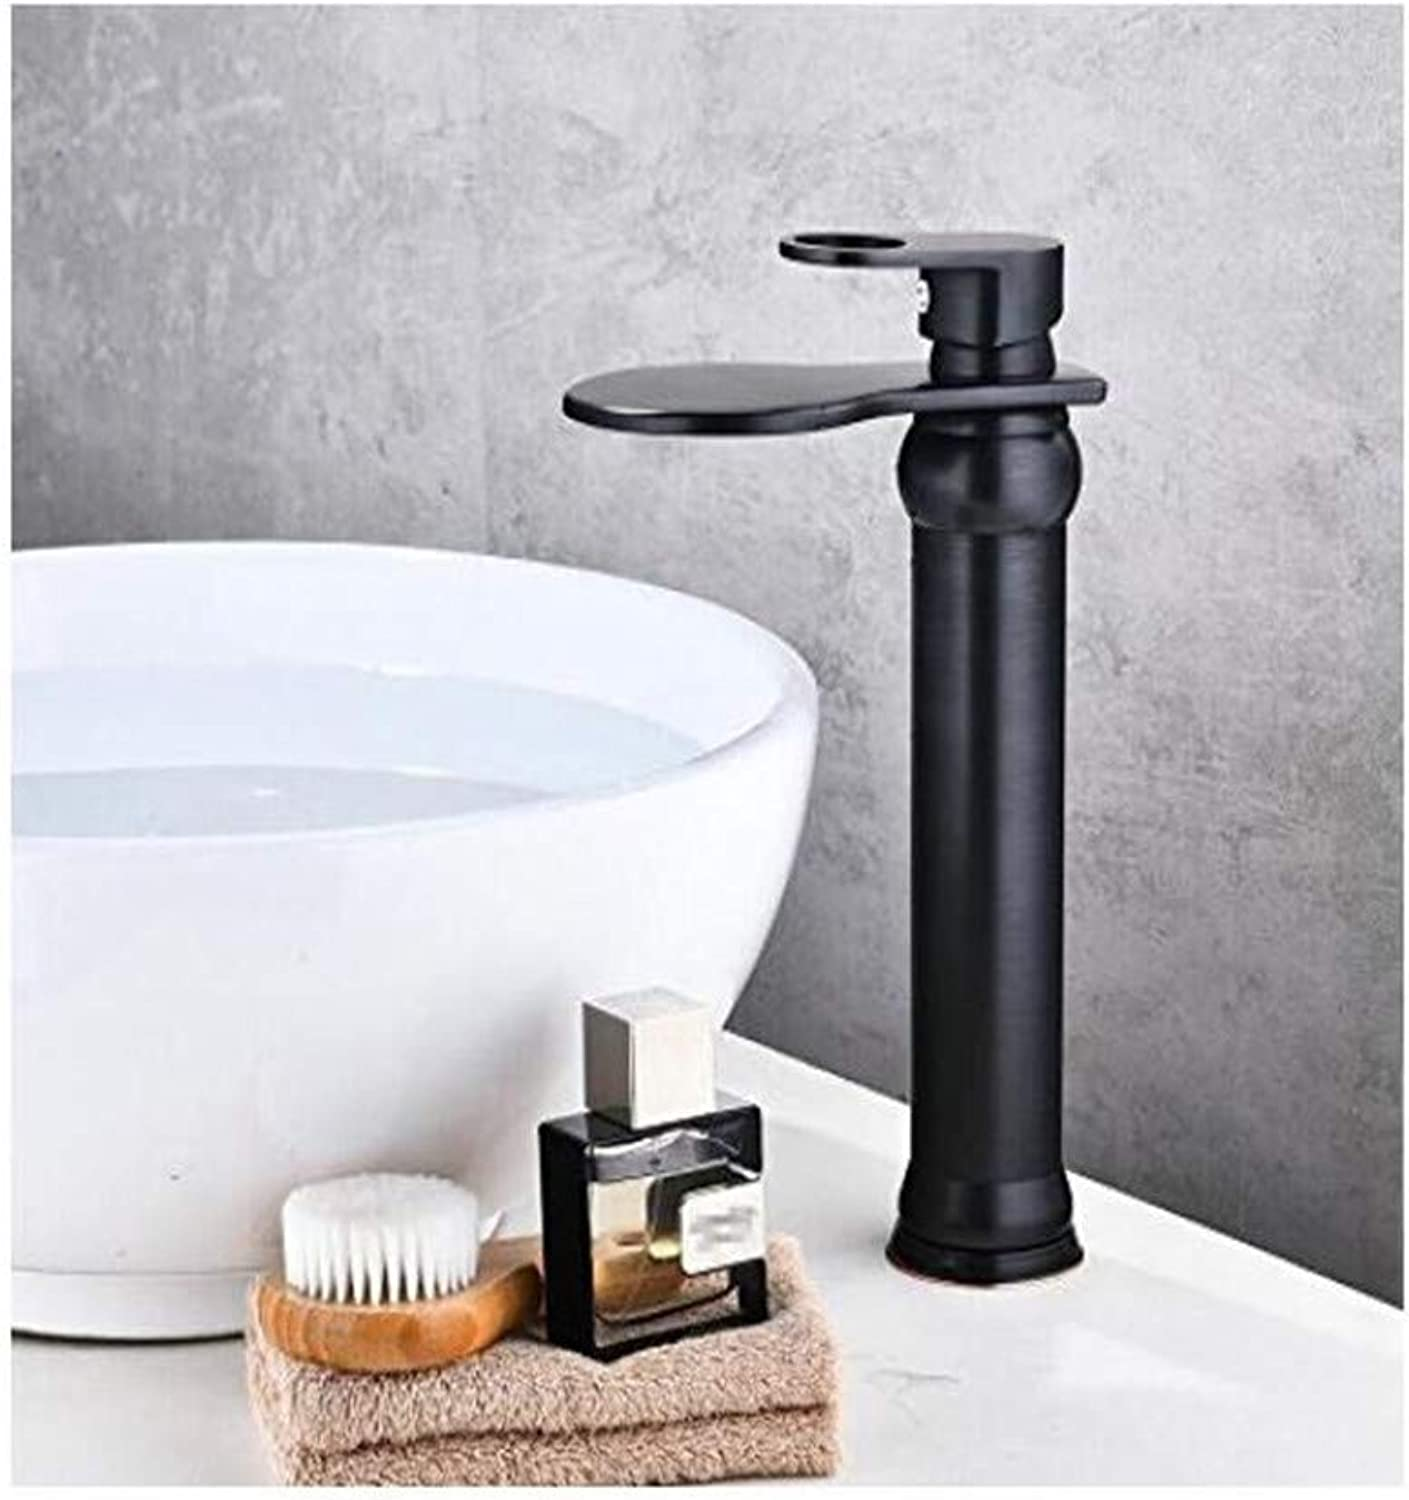 Faucet Retro Kitchen Mixer Faucet Oil Brushed Waterfall Faucet Bathroom Faucet Bathroom Basin Faucet Mixer Tap Hot and Cold Sink Faucet